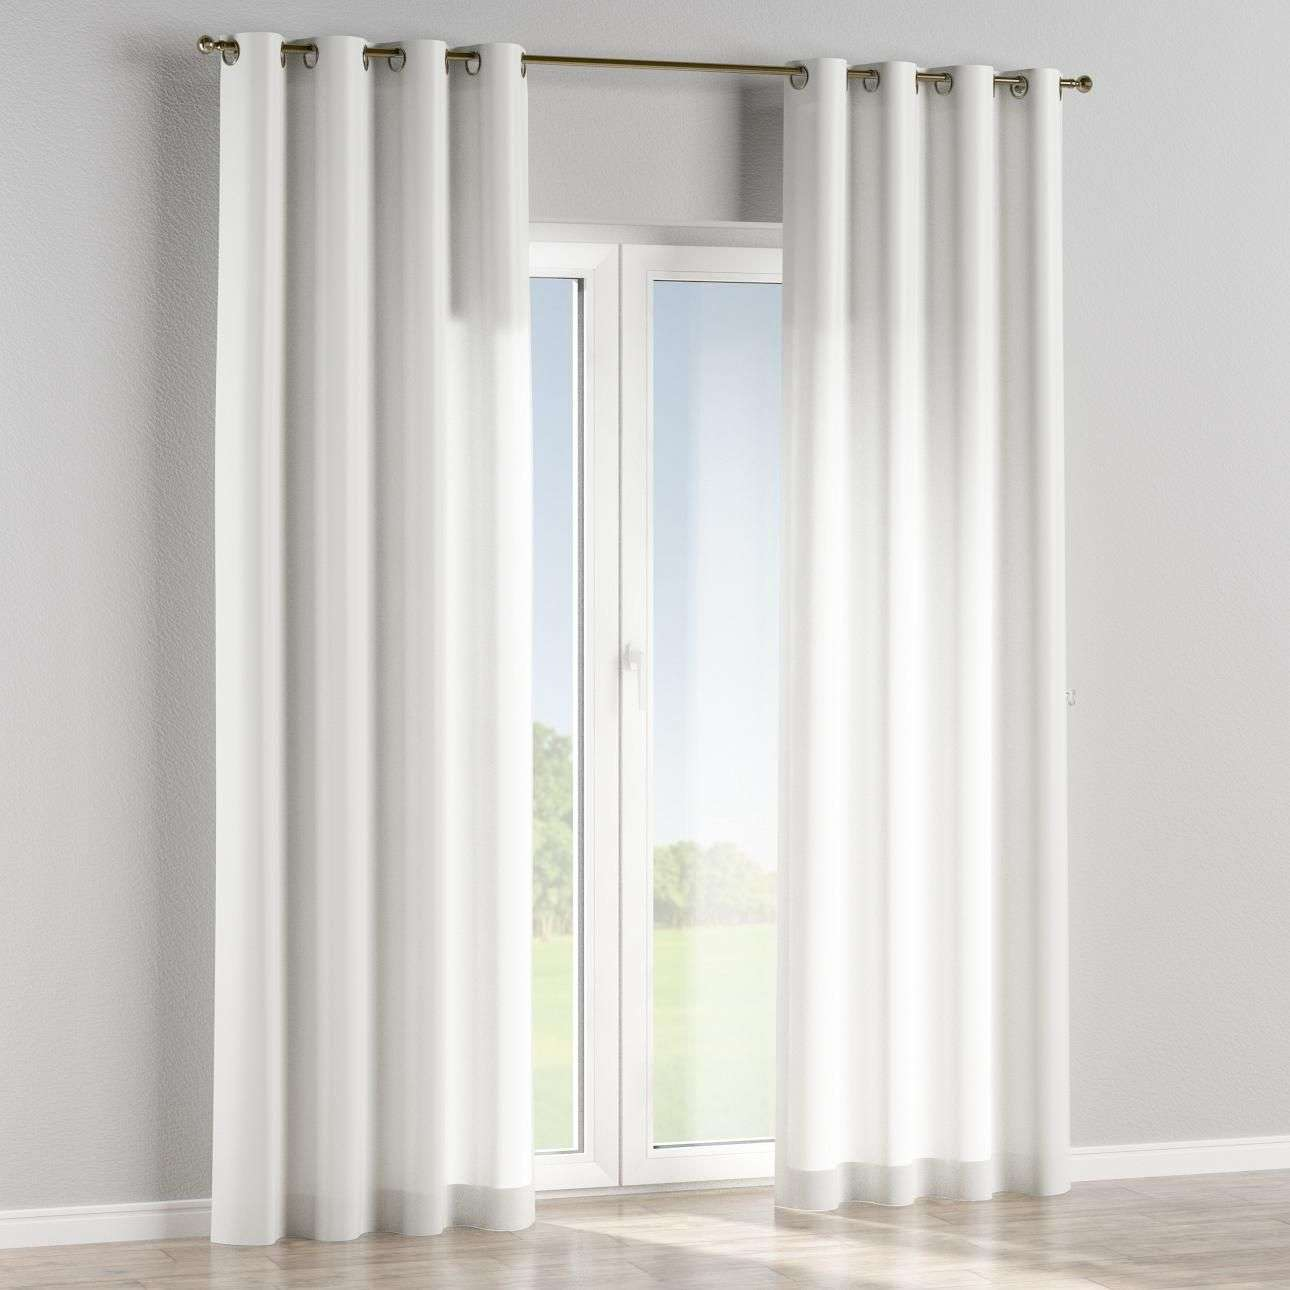 Eyelet curtains in collection Freestyle, fabric: 135-06